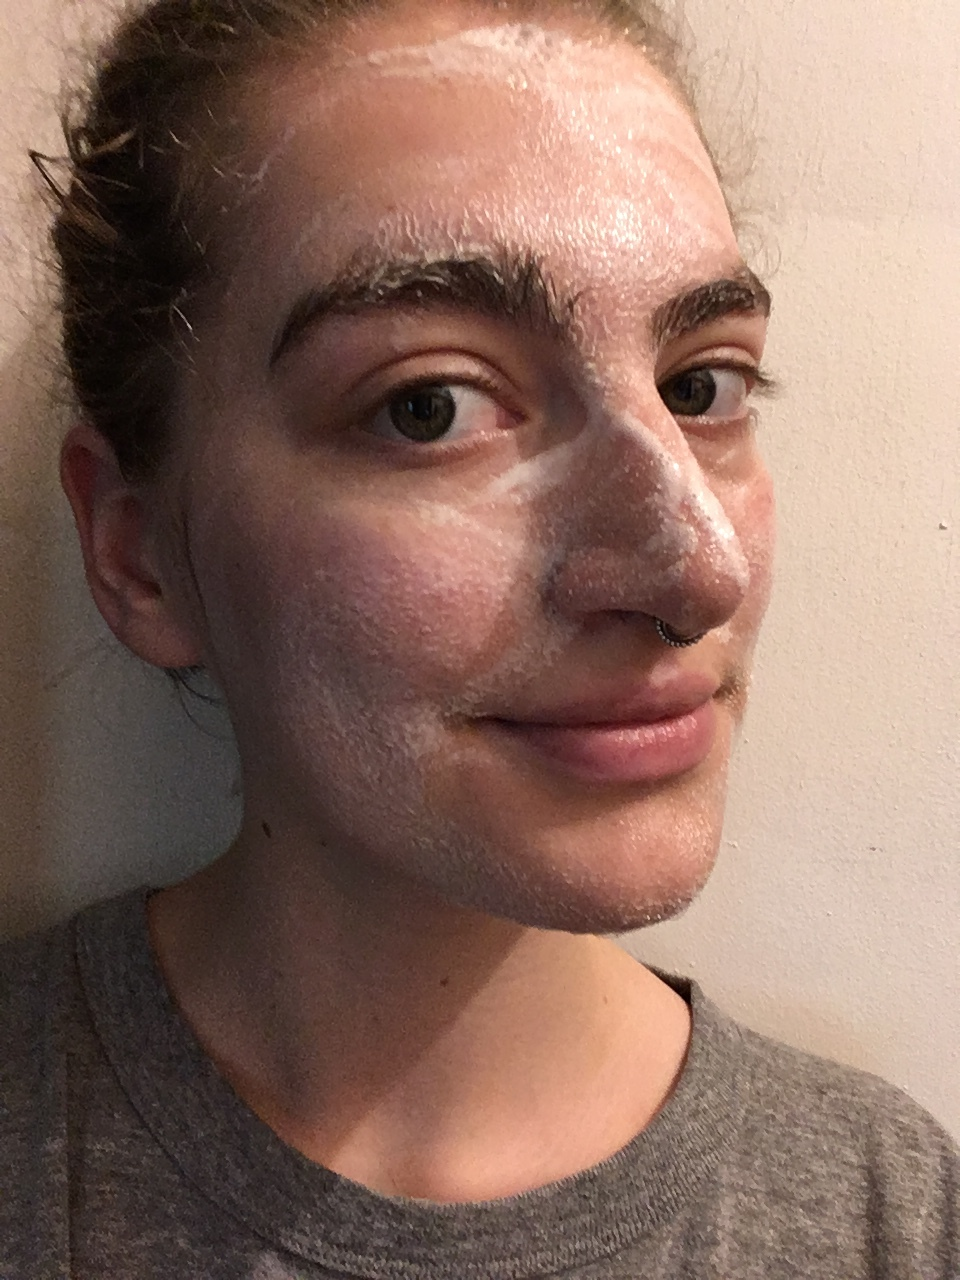 Me with spearmint cleansing mask on! Instructions had me leave it for ten minutes. It felt tingly cool with no pinching.